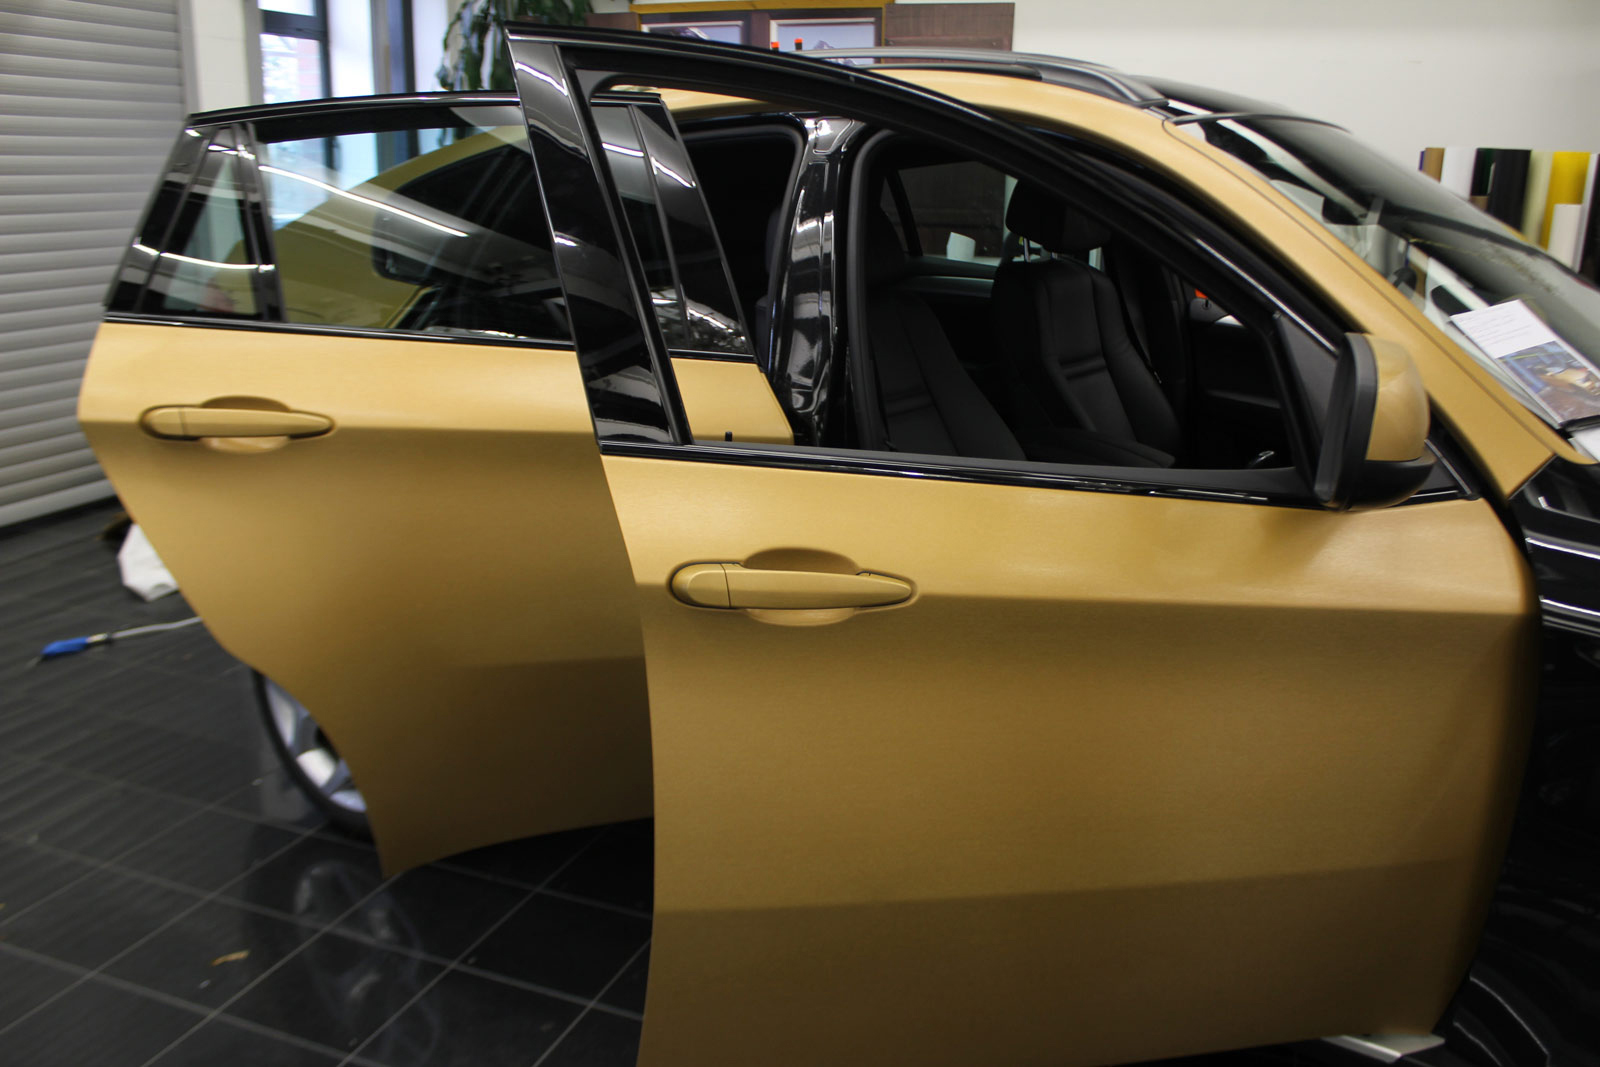 BMW_X6_VERKLEBUNG_BRUSHED_GOLD_52